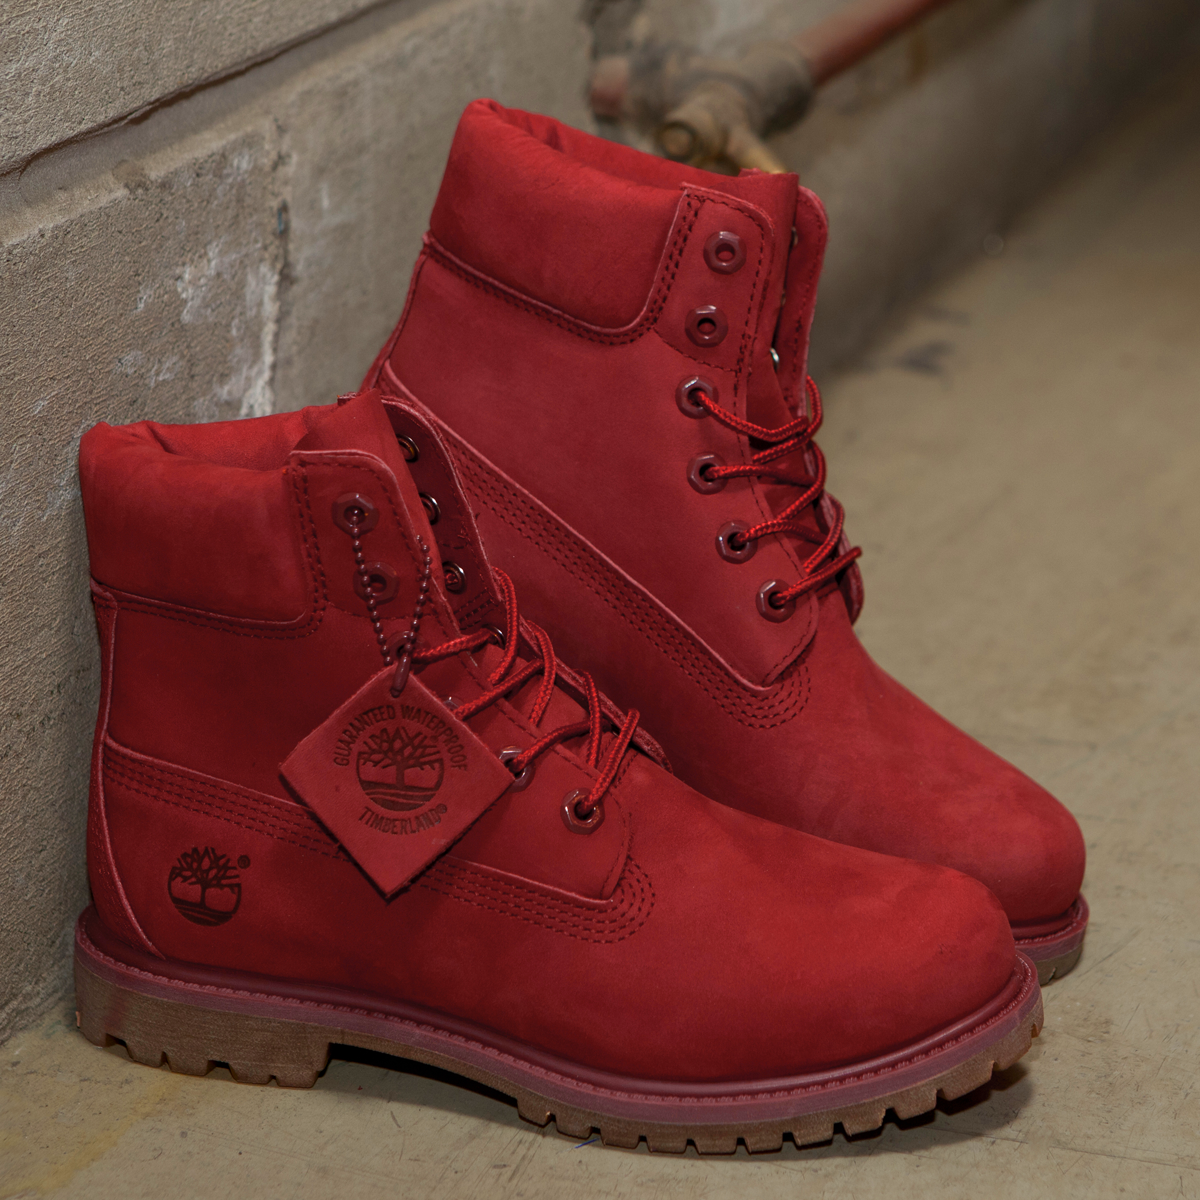 http://www.newtrendsclothing.com/category/timberland ...